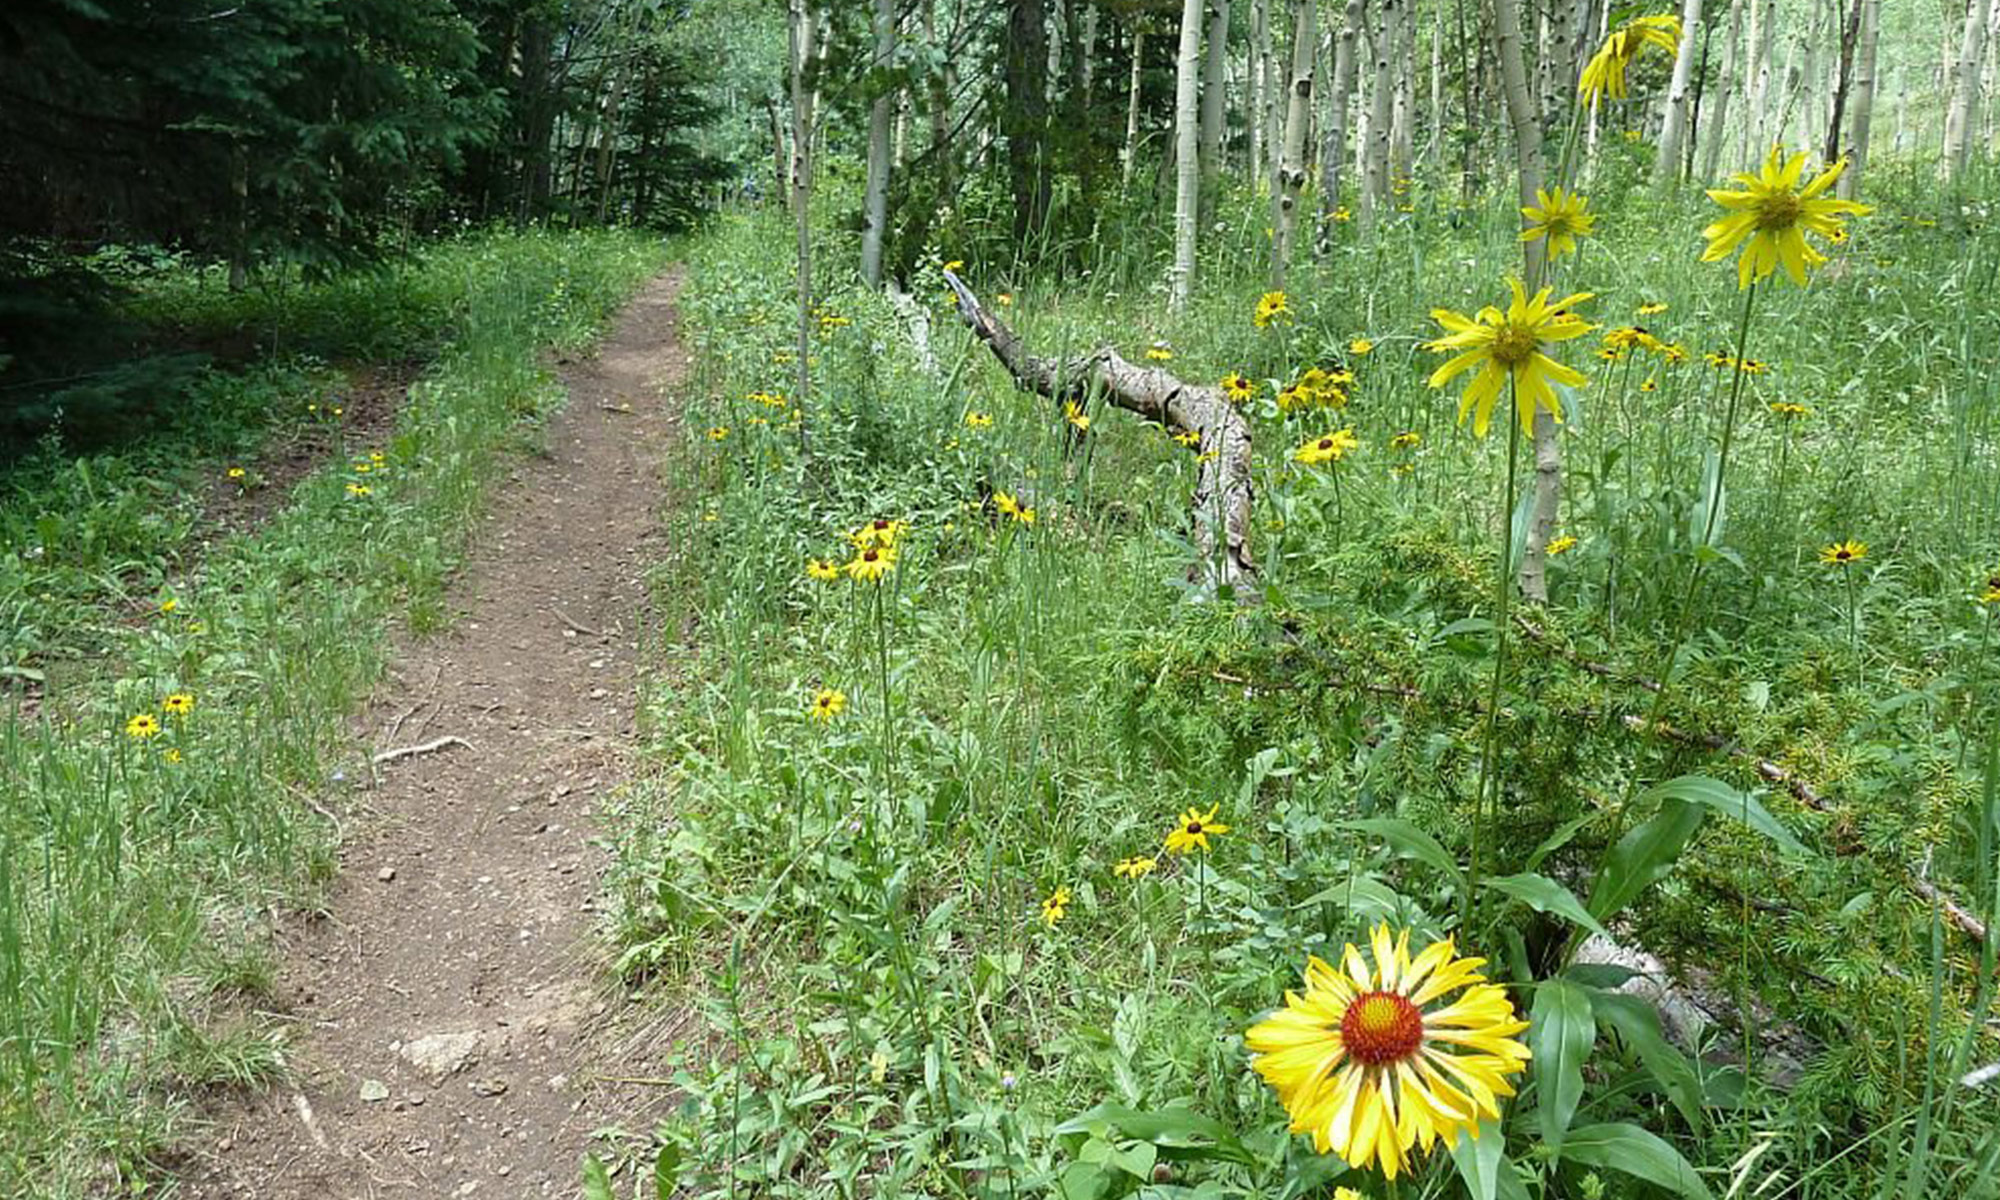 Overlookout (Lookout Connector) Trail Day – July 7